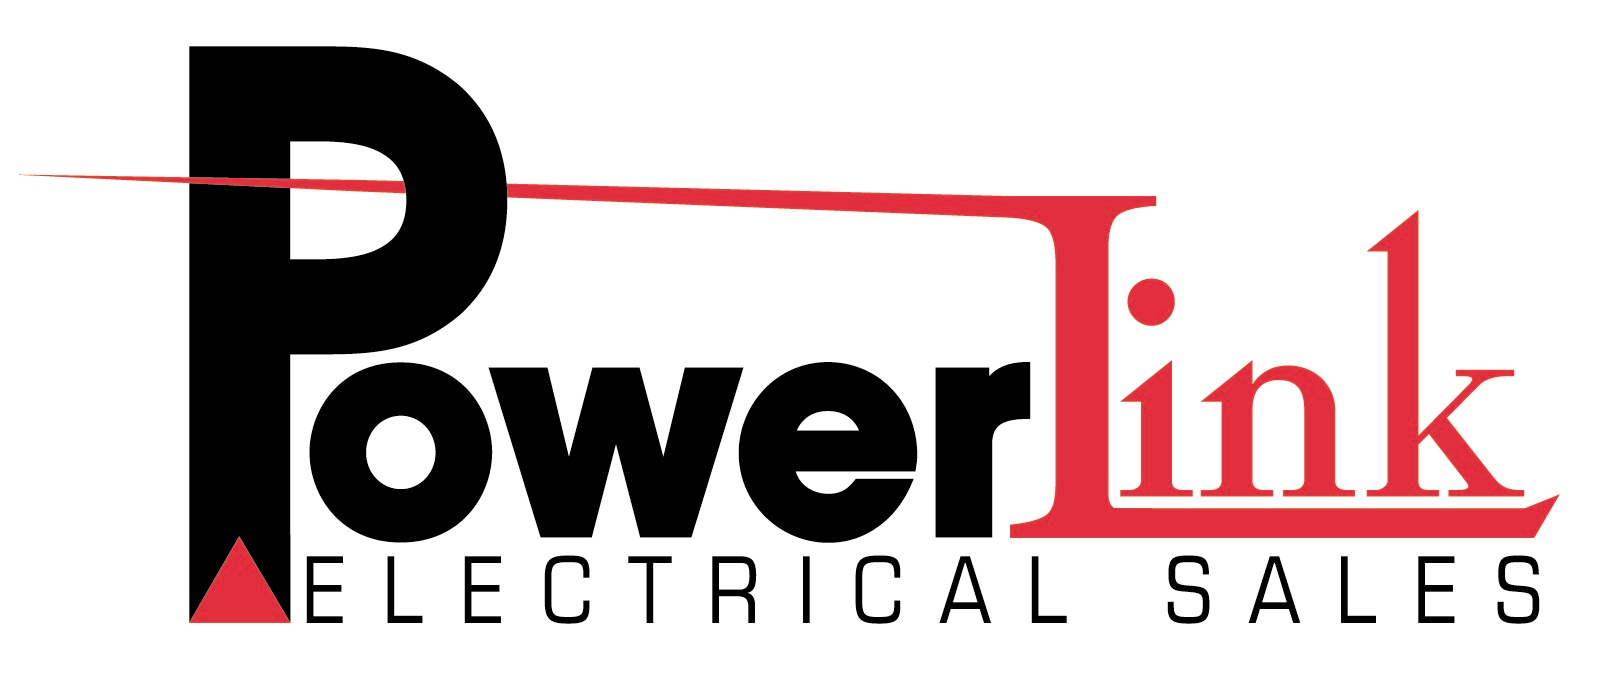 PowerLink Electrical Sales